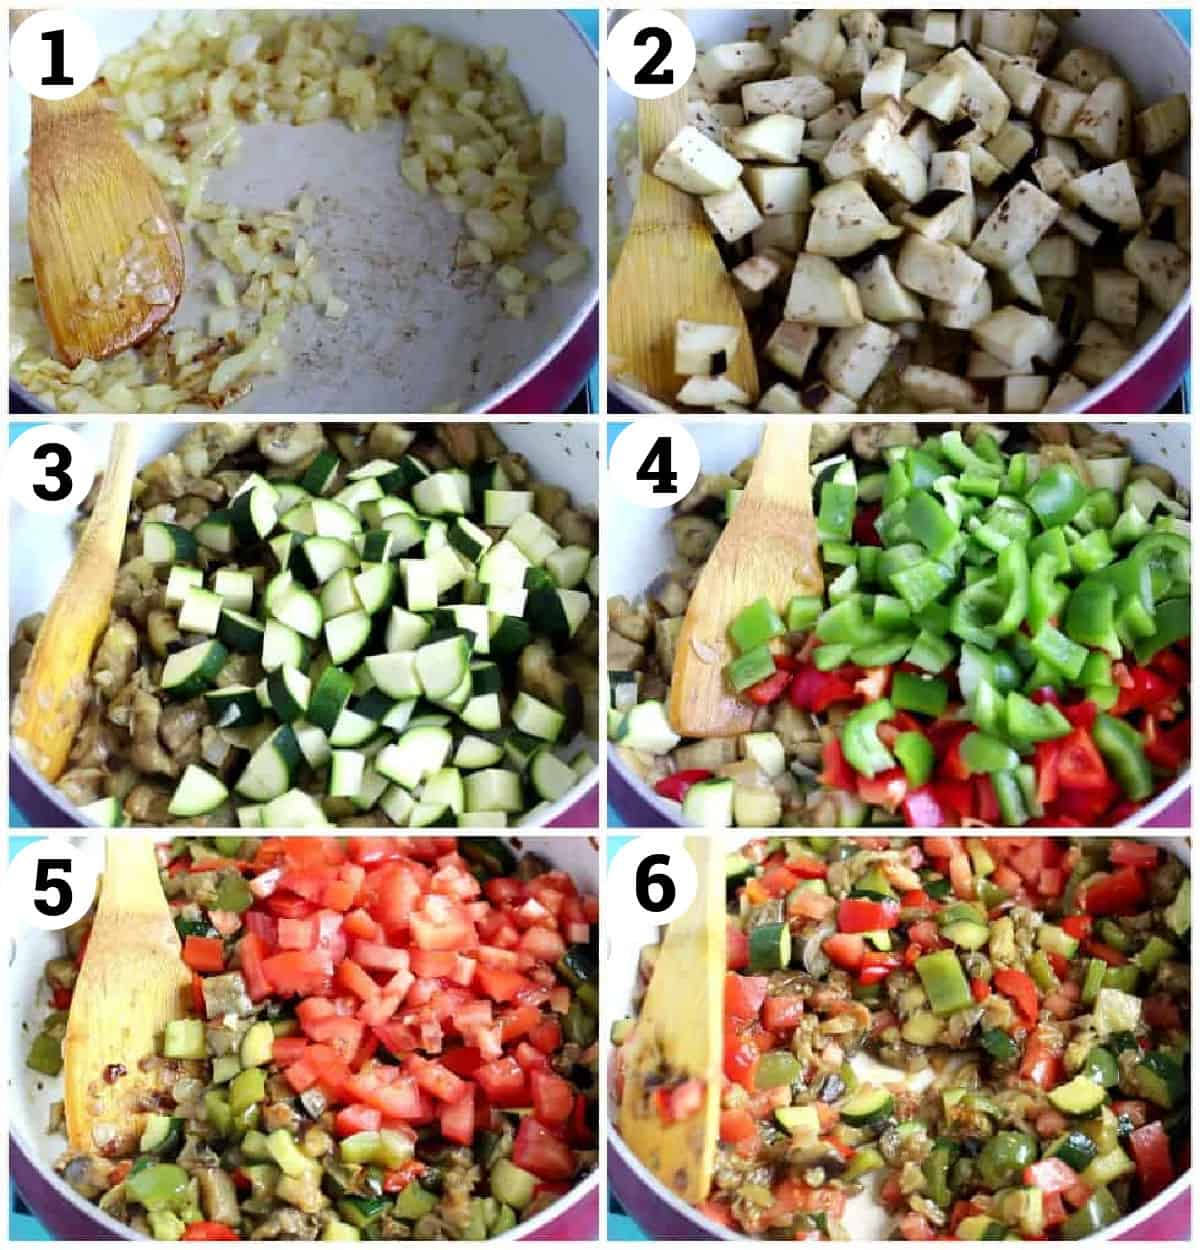 saute onion and garlic, add in eggplant and cook. Add zucchini and peppers. Add in tomatoes and spices. Cook for about 25 minutes.